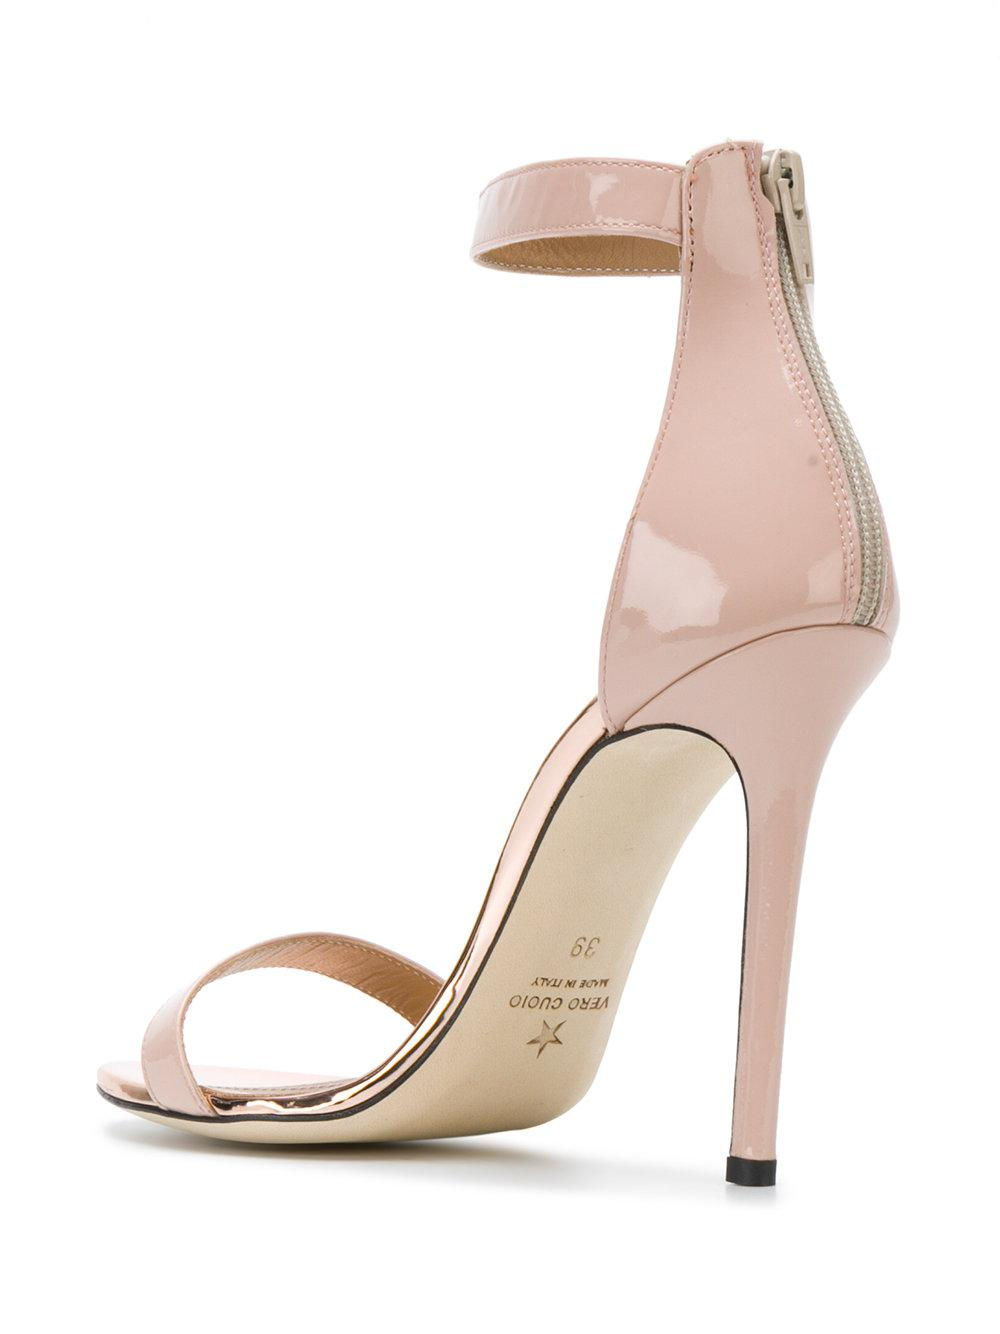 ankle strap stiletto sandals - Nude & Neutrals Marc Ellis 453S4